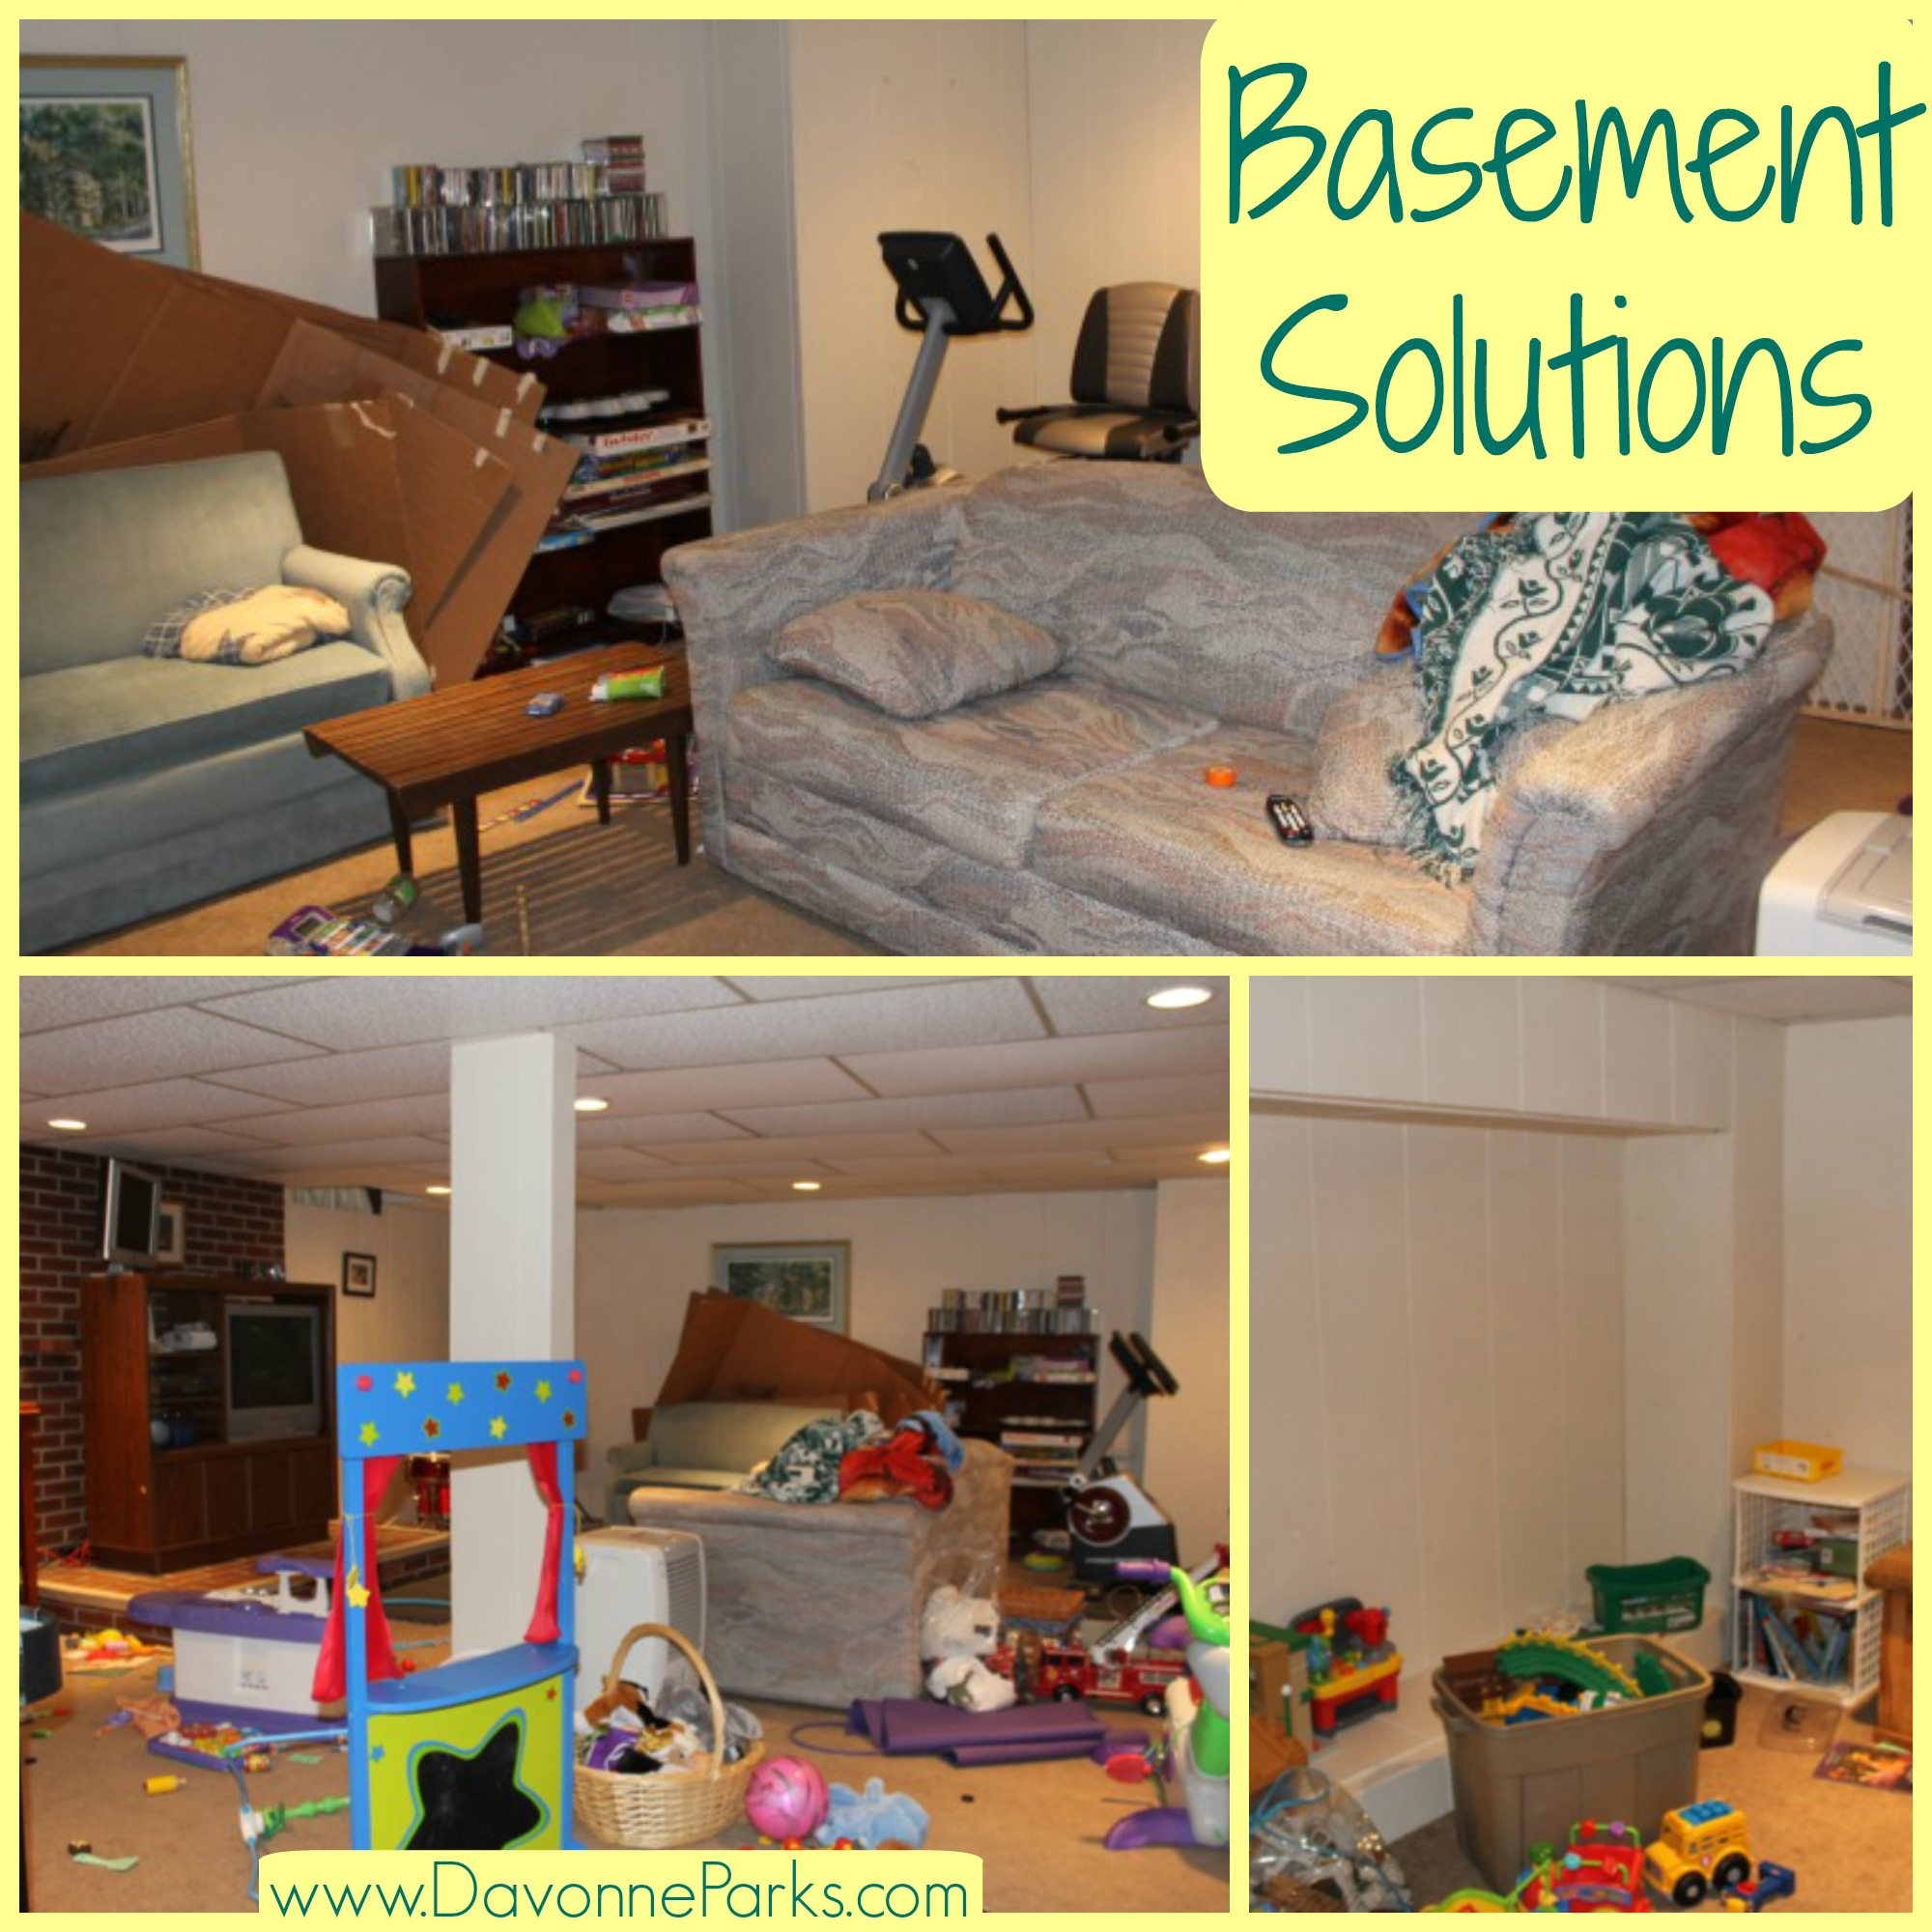 Creating a Space the Entire Family Can Enjoy